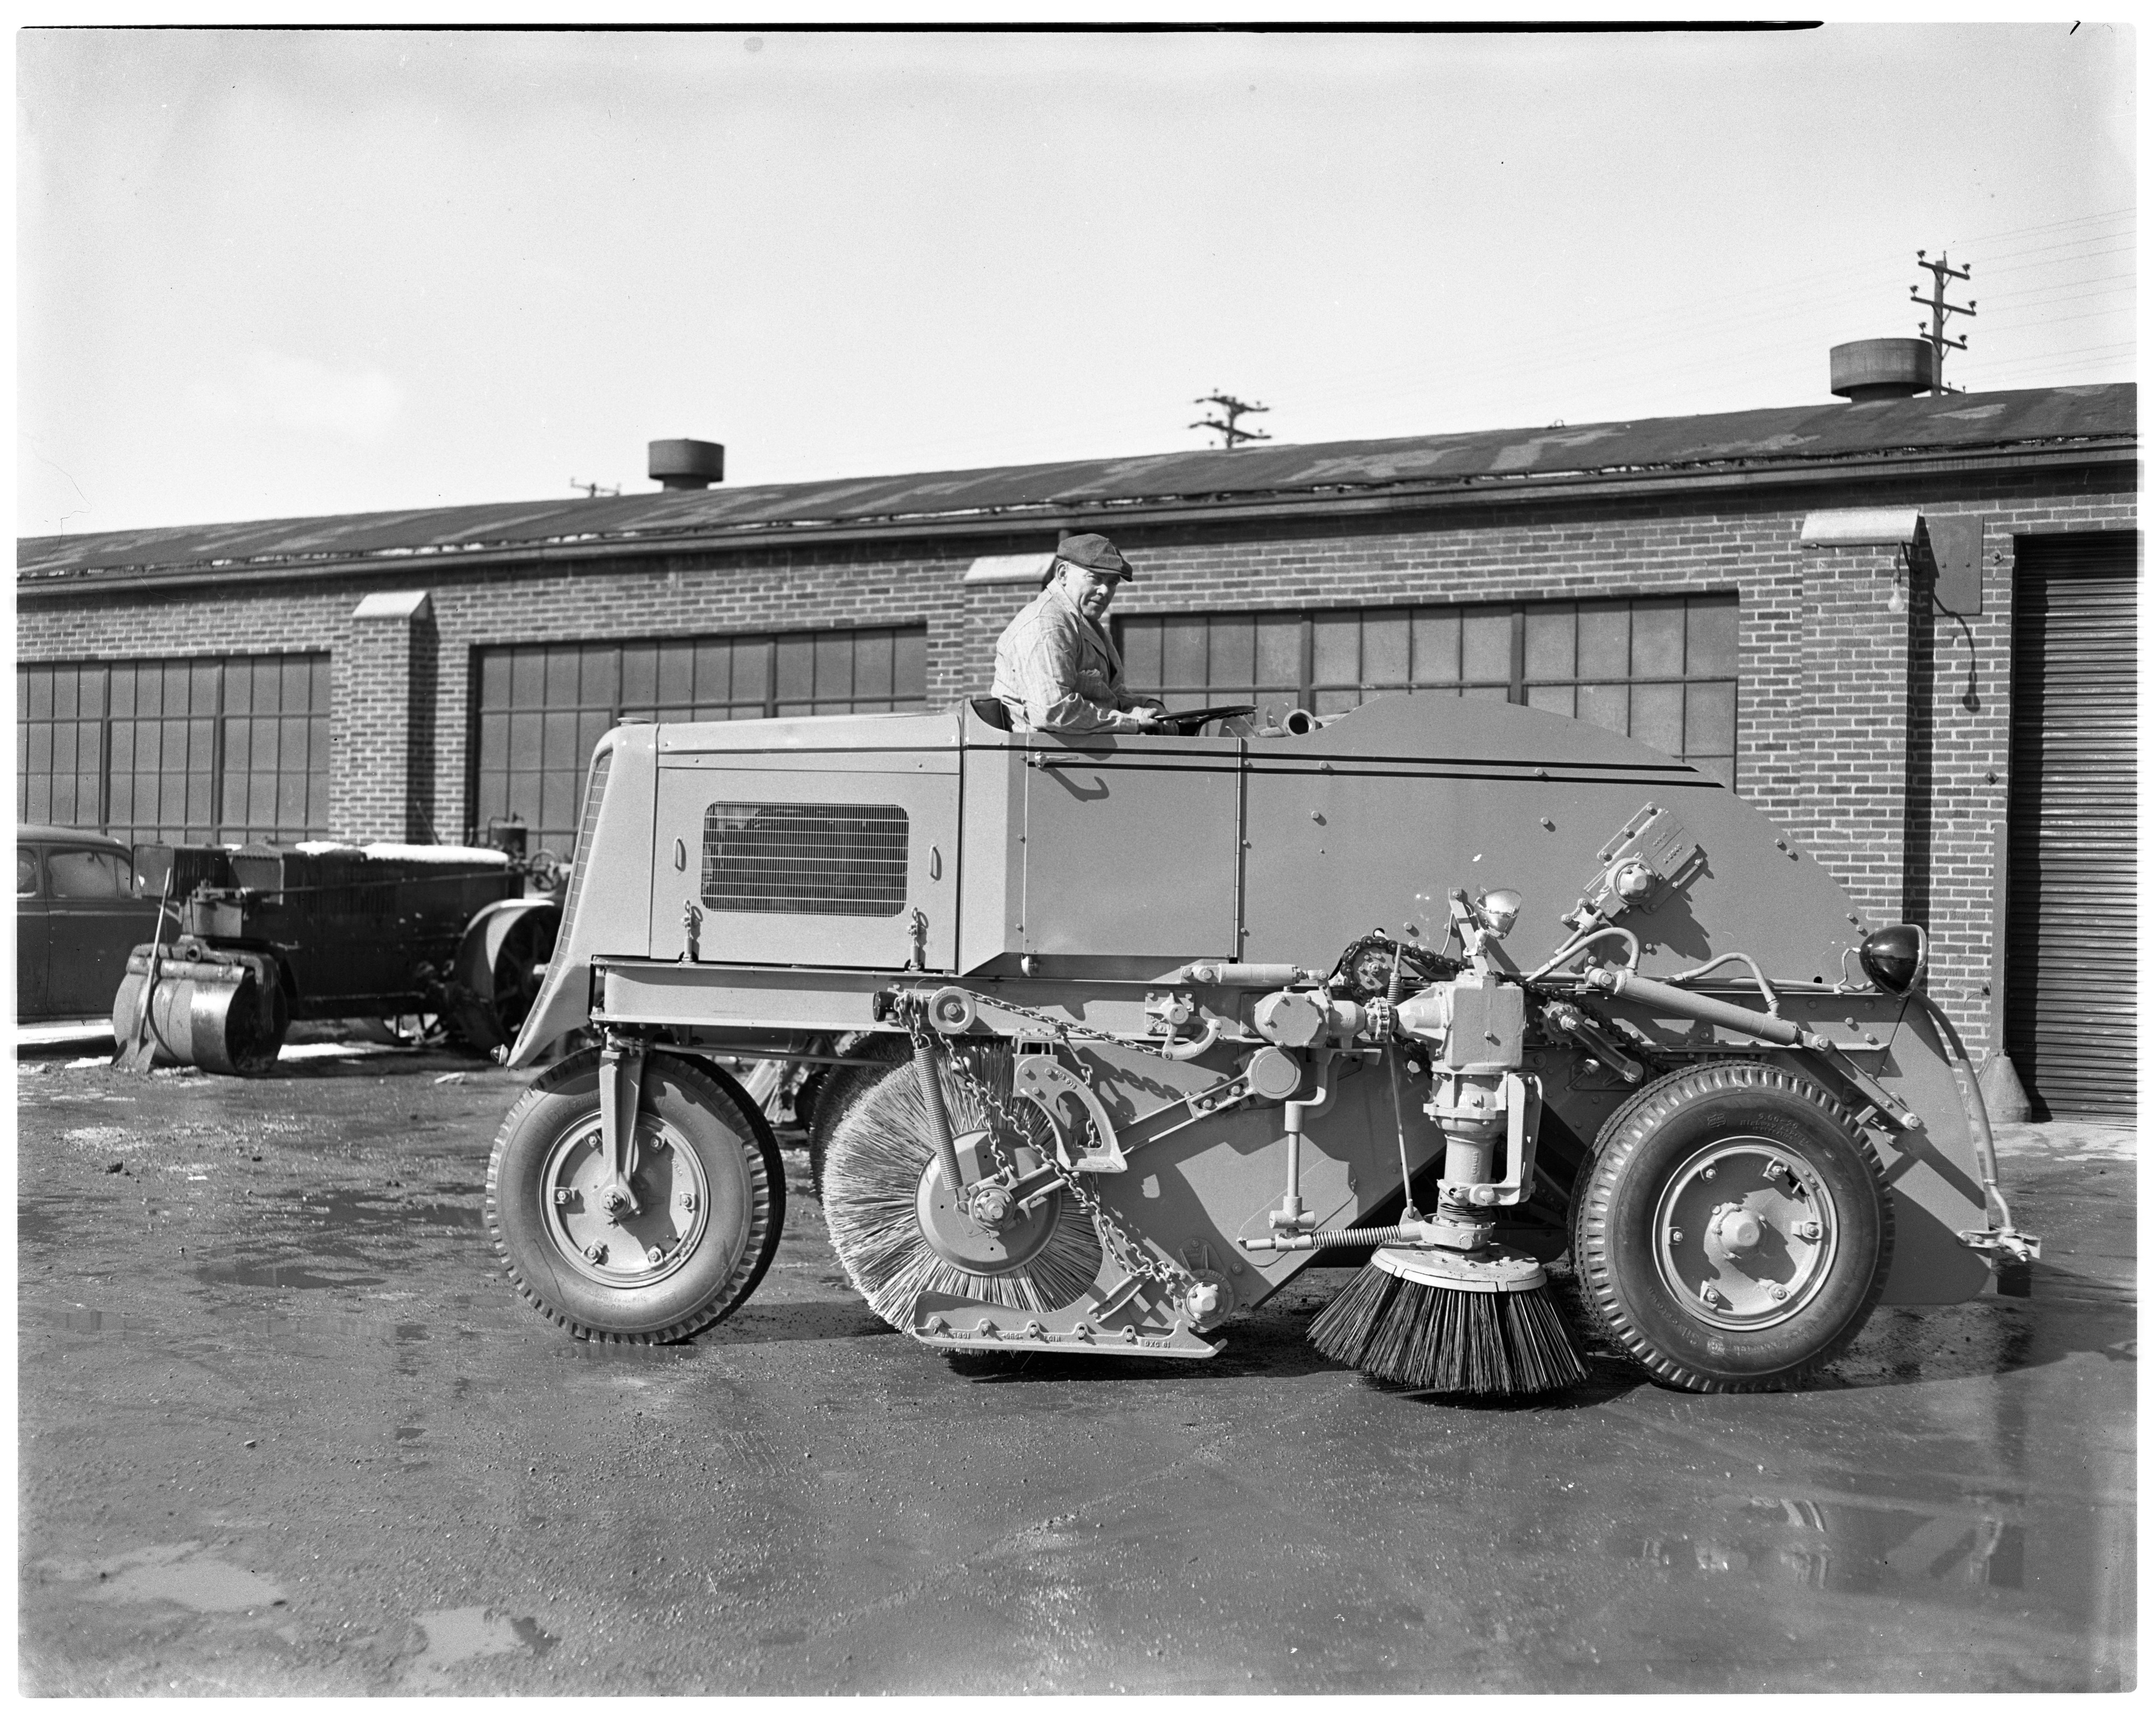 Leslie Bird Tests Out Ann Arbor's New Street Sweeper, March 1949 image